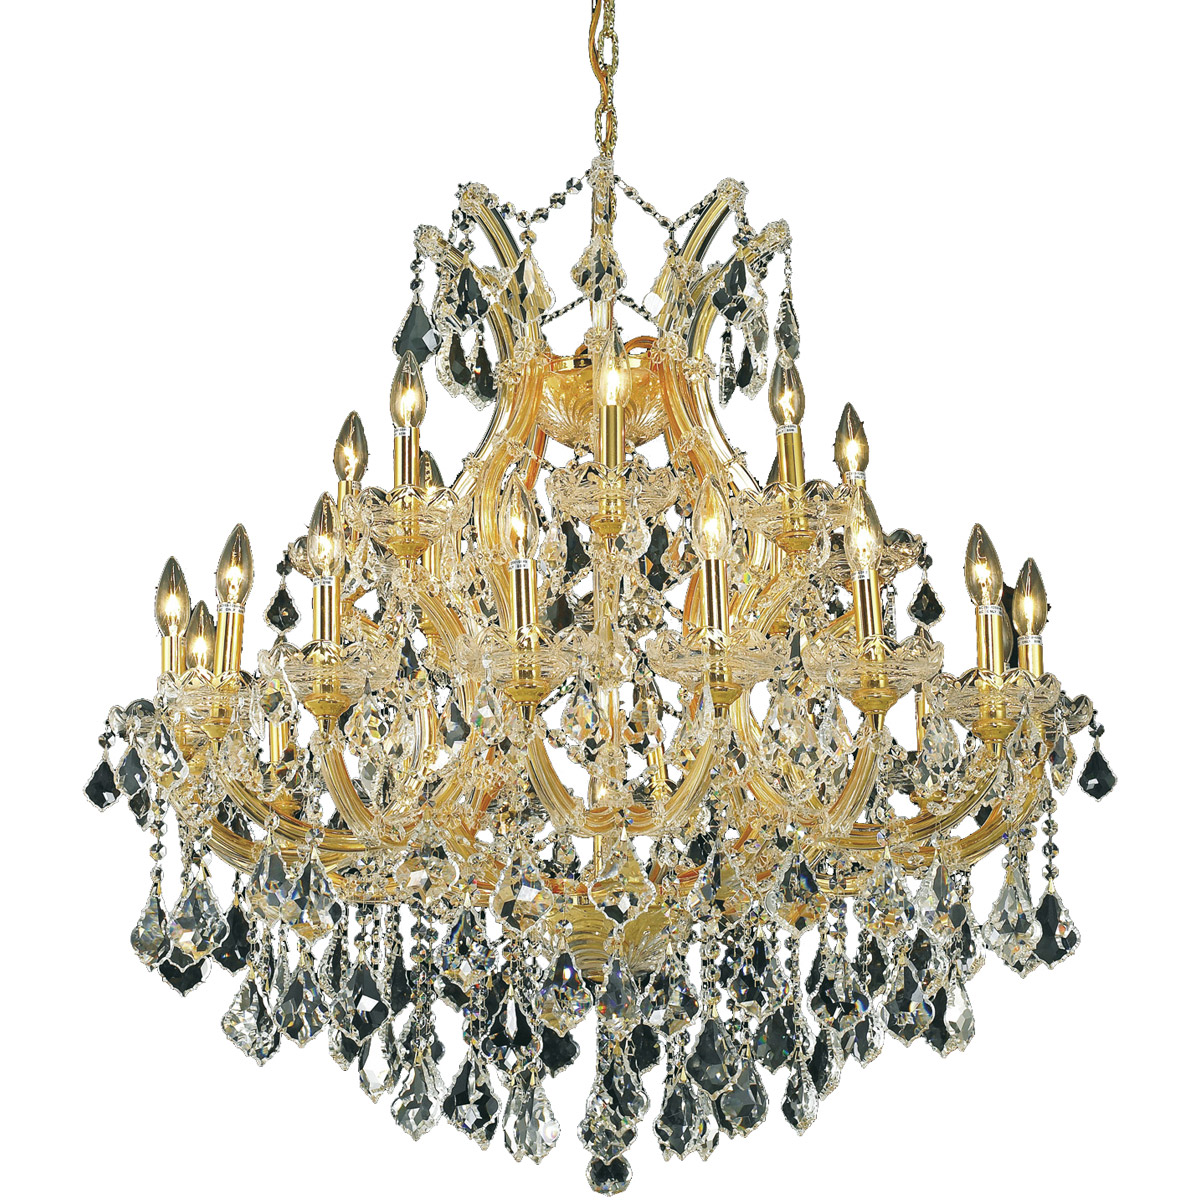 24 Light Beautiful High Quality Chrome Crystal Chandelier This Has Top Egyptian Asfour Crystals That Sparkle Like Jewels